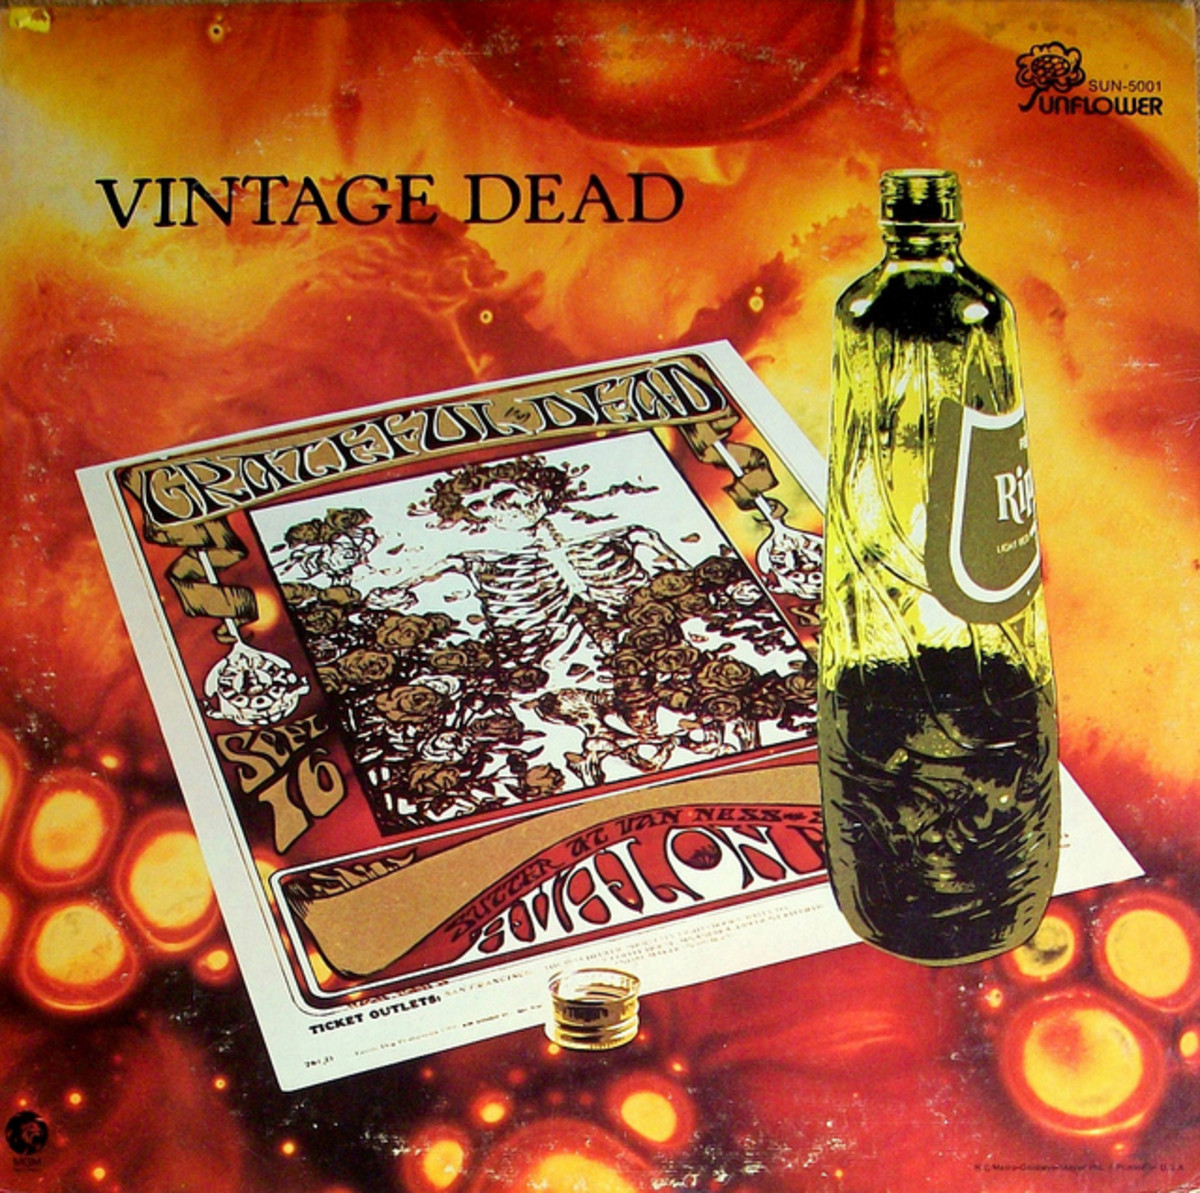 "Grateful Dead ""Vintage Dead"" Sunflower Records SUN-5001 12"" LP Vinyl Record US Pressing (1970)"